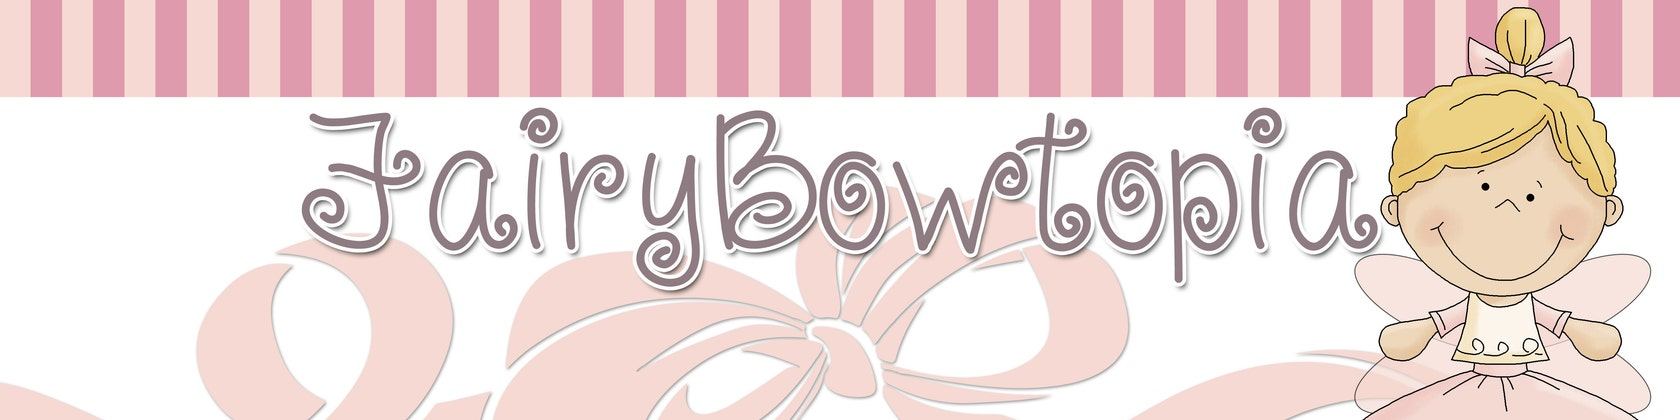 Quality Handcrafted Hair Accessories By Fairybowtopia On Etsy